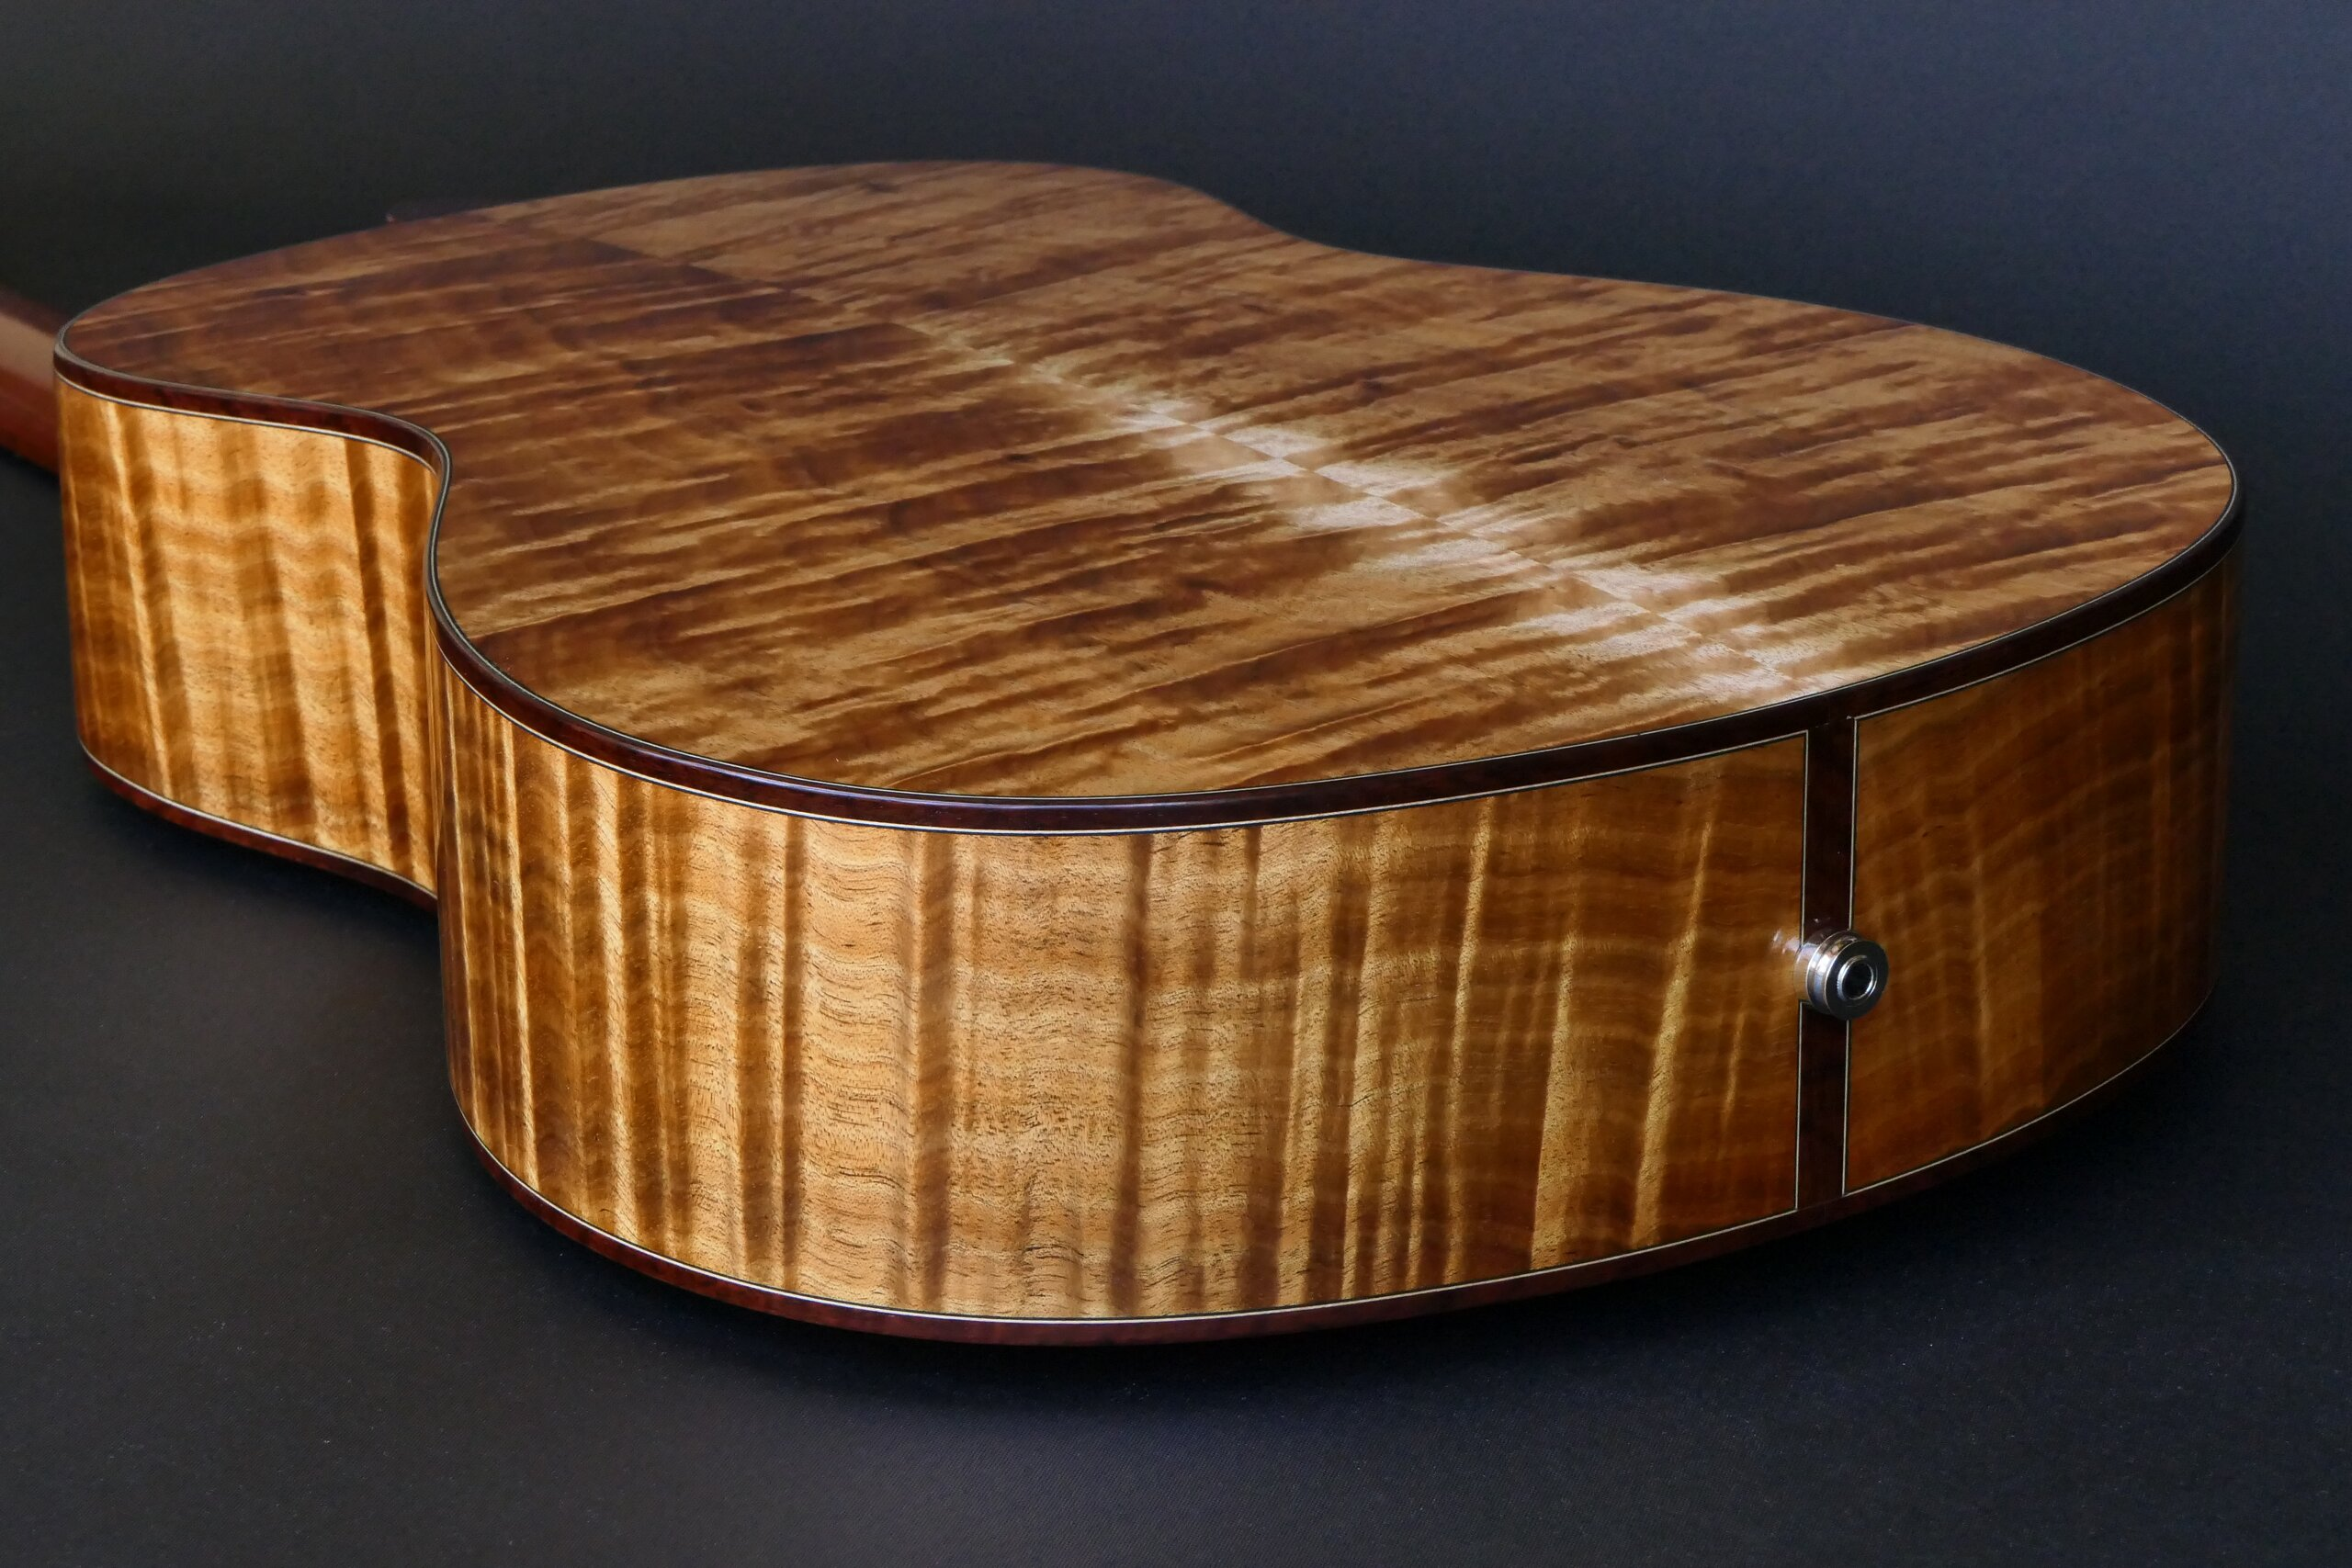 Flamenco guitar with low density Australian blackwood back and sides